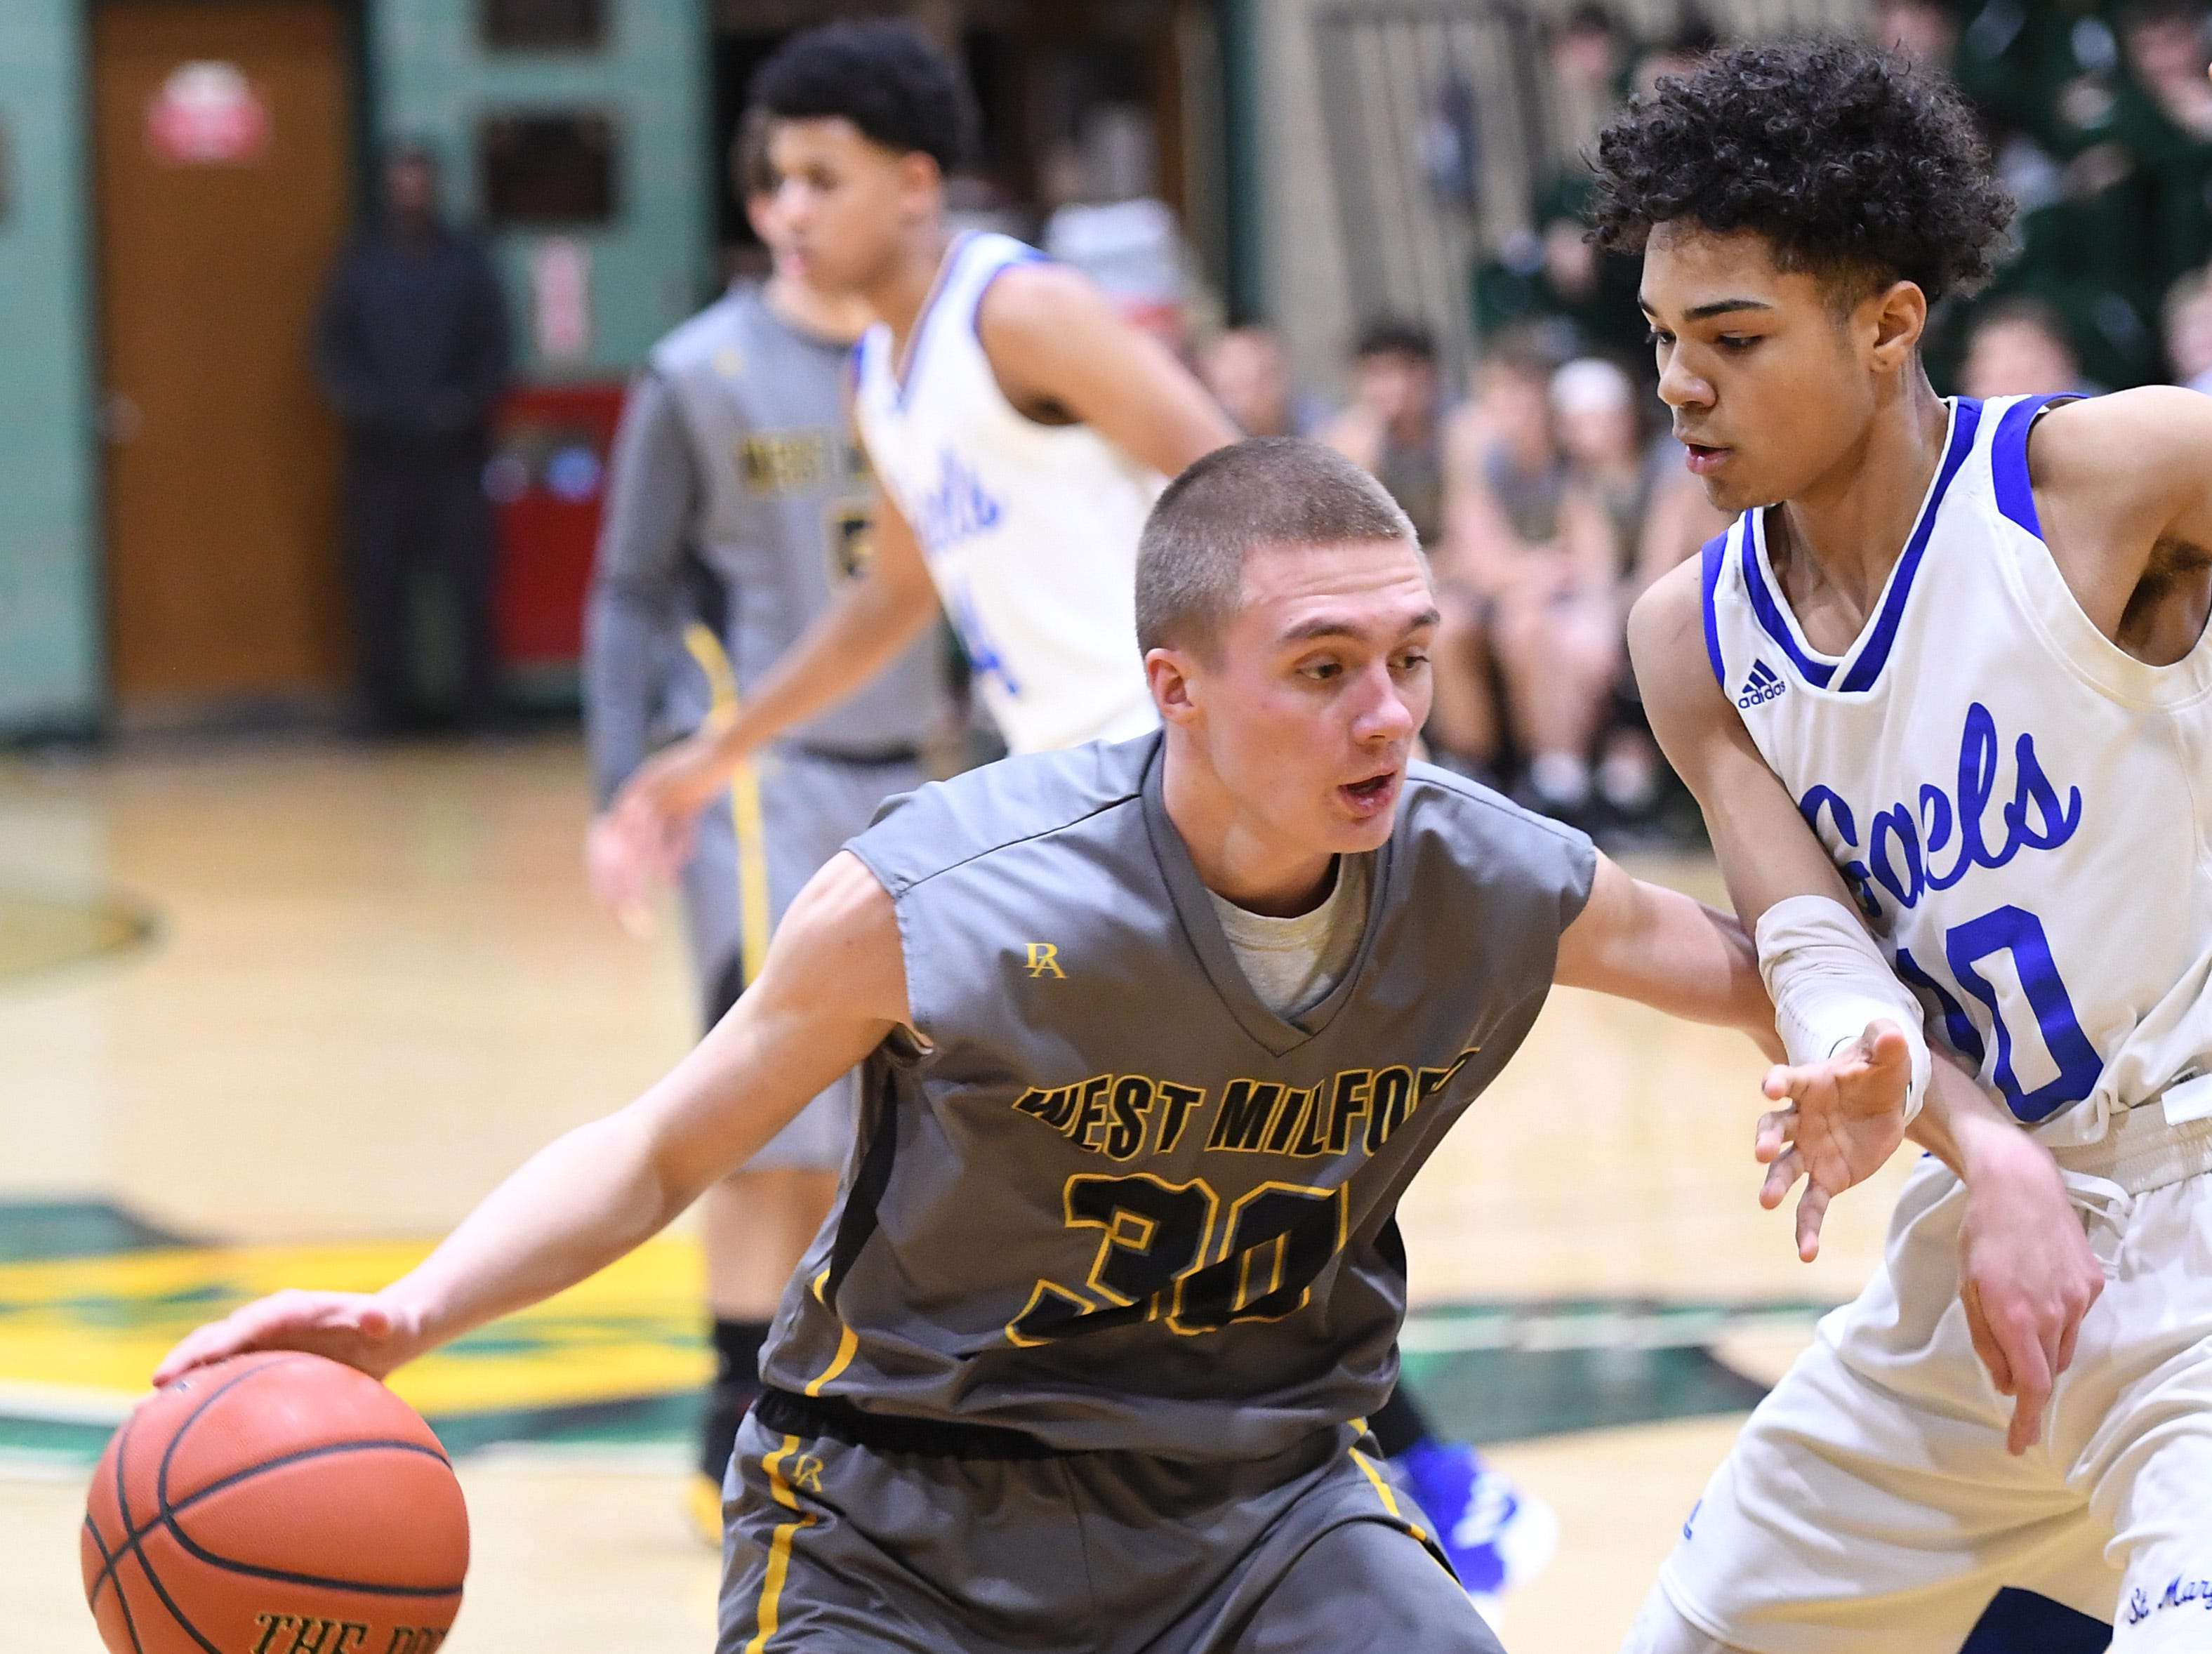 Public vs. Private Basketball Showcase at St. Joseph High School in Montvale on Saturday, January 12, 2019. West Milford vs. St. Mary. WM #30 Josiah Basket tries to get past SM #10 Nick Boyd.